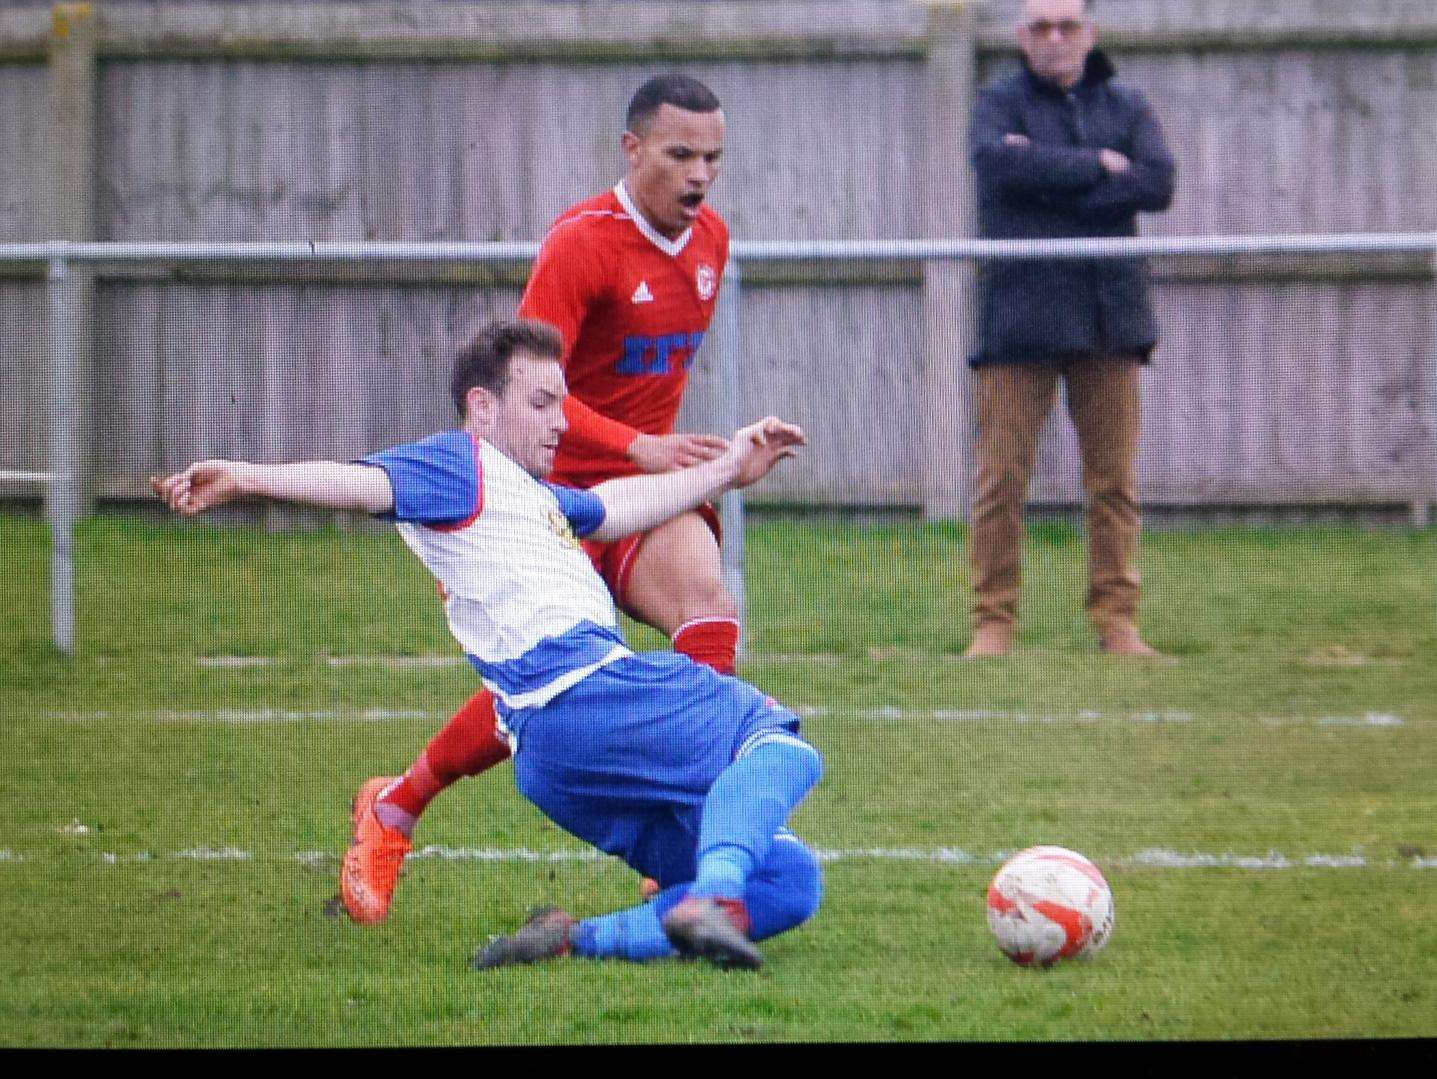 HOME DEFEAT: Jemel Fox looks to win the ball back for Haverhill Rovers against FC Clacton Picture: Tudor Morgan-Owen